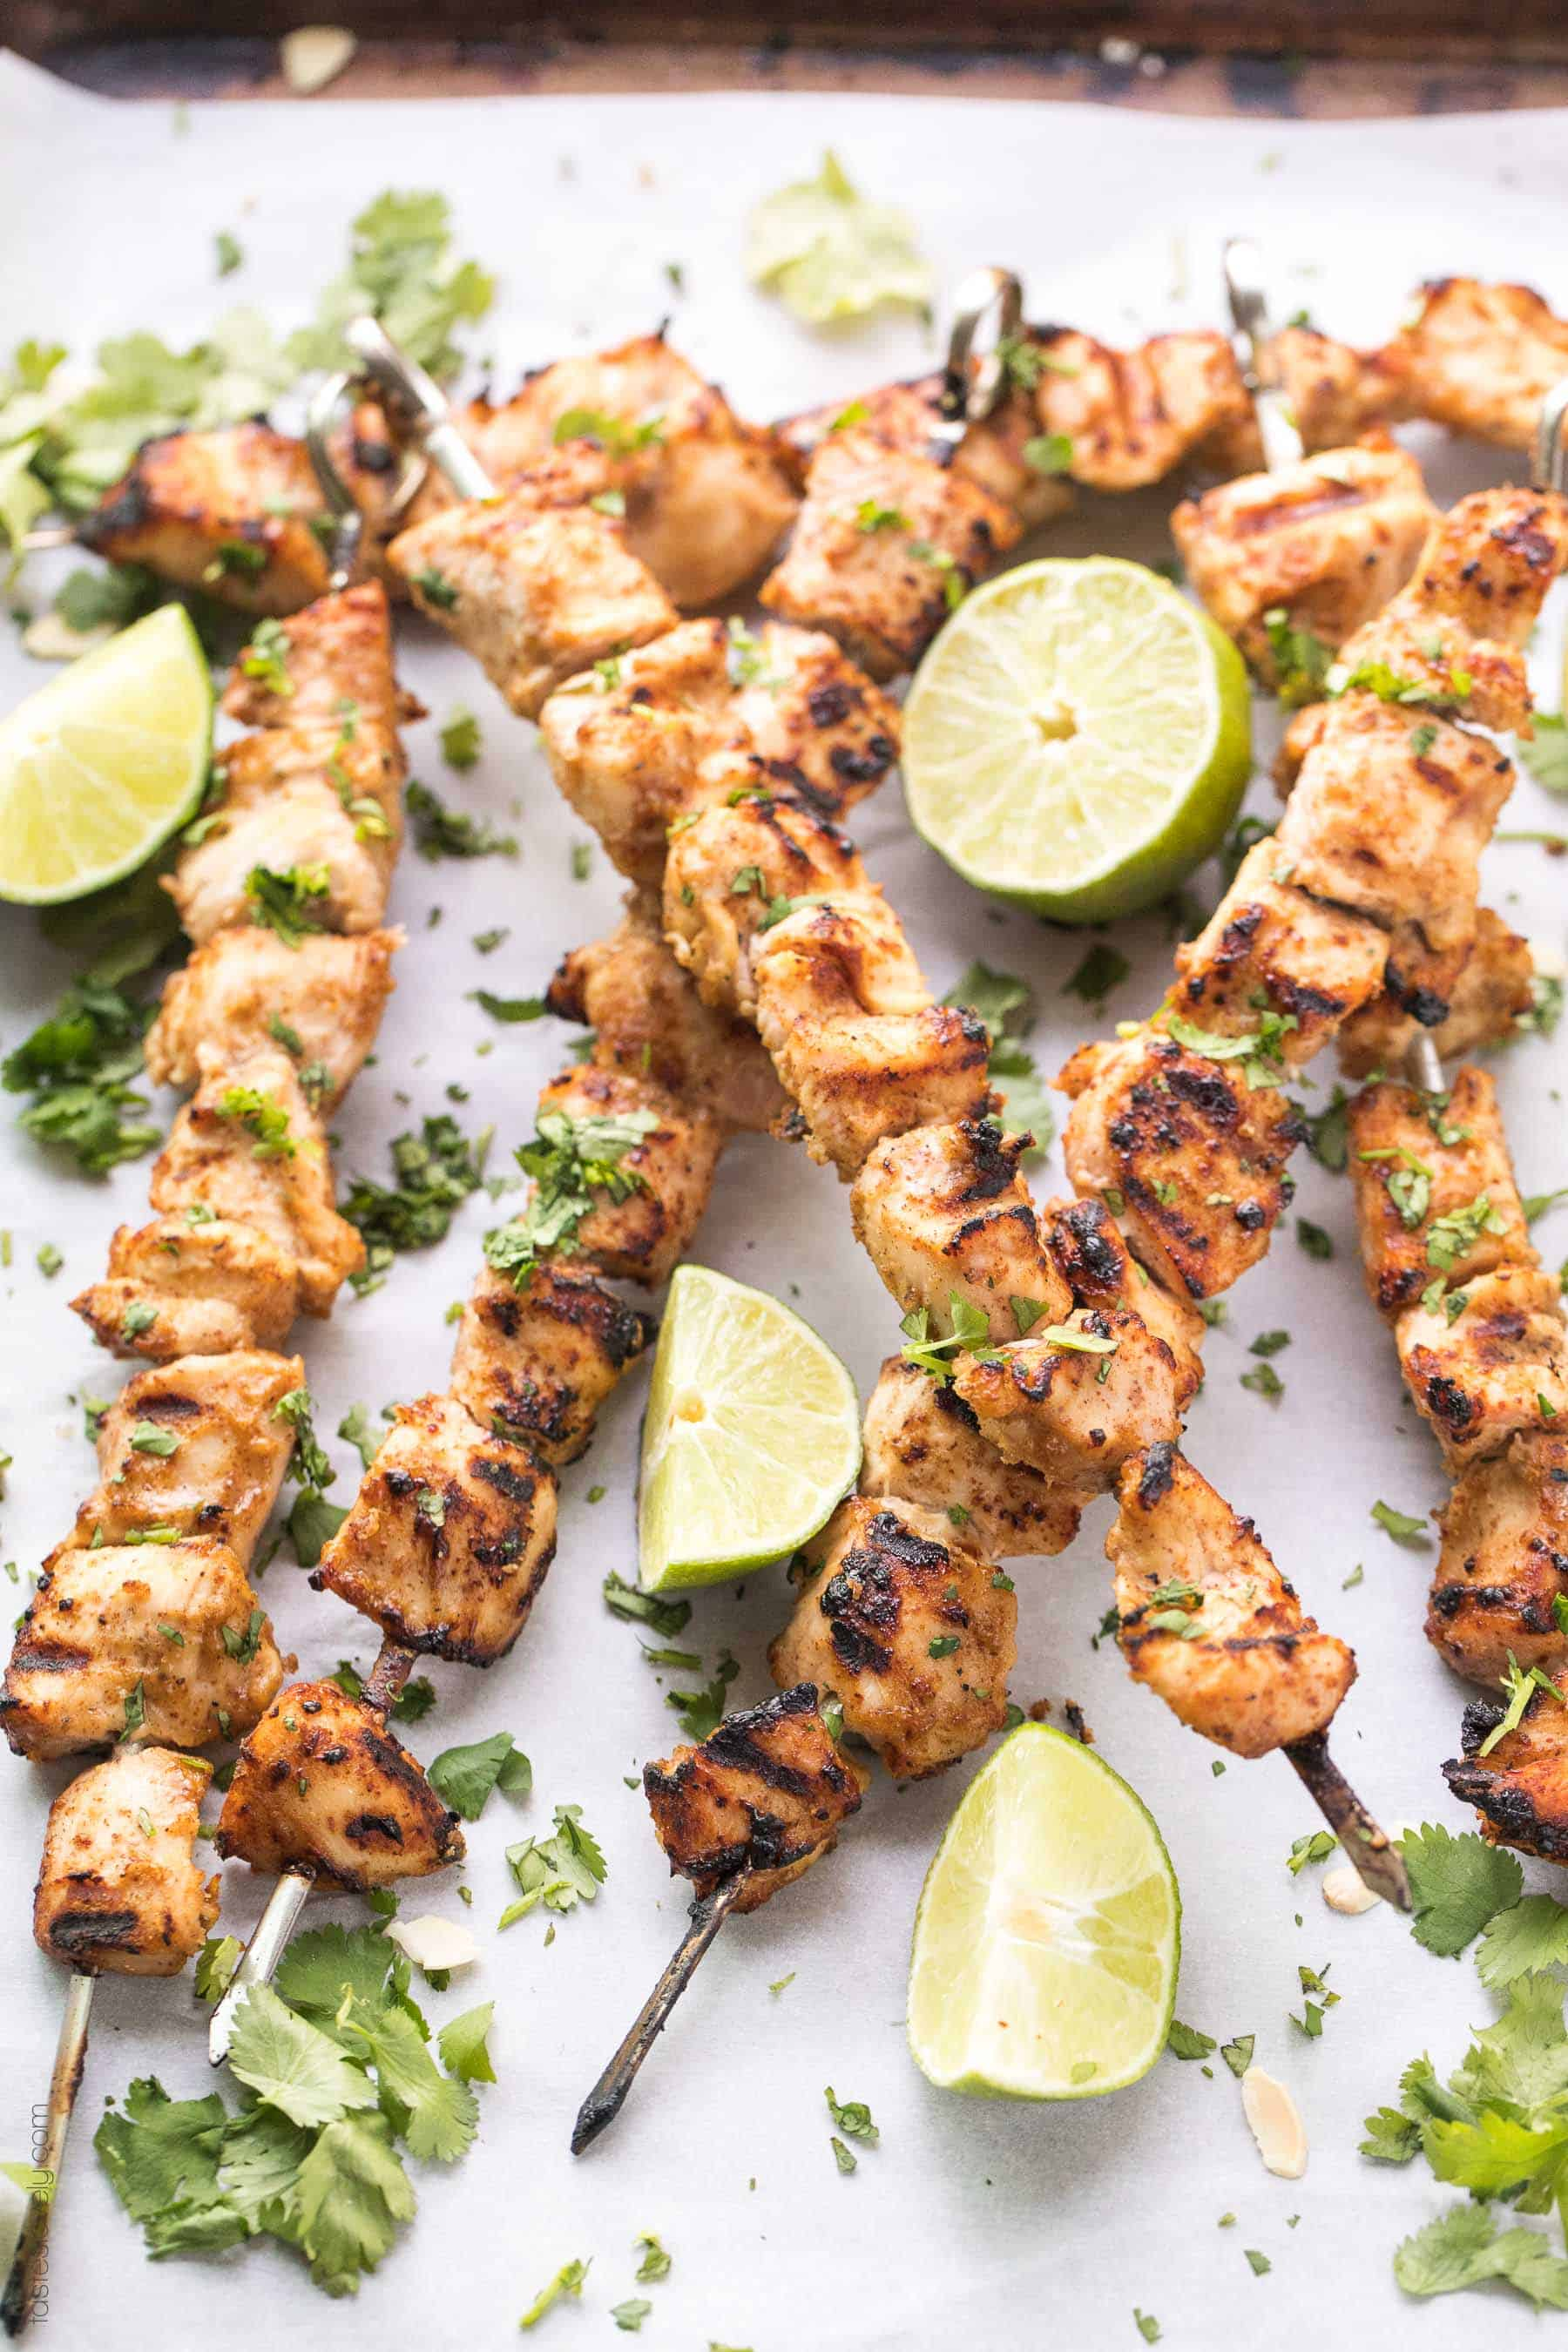 Paleo + Whole30 Thai Chicken Satay Skewers Recipe - a healthy and delicious dinner of chicken skewers marinated in a paleo + whole30 chicken satay sauce made with almond butter. #glutenfree #grainfree #dairyfree #paleo #whole30 #refinedsugarfree #cleaneating #realfood #keto